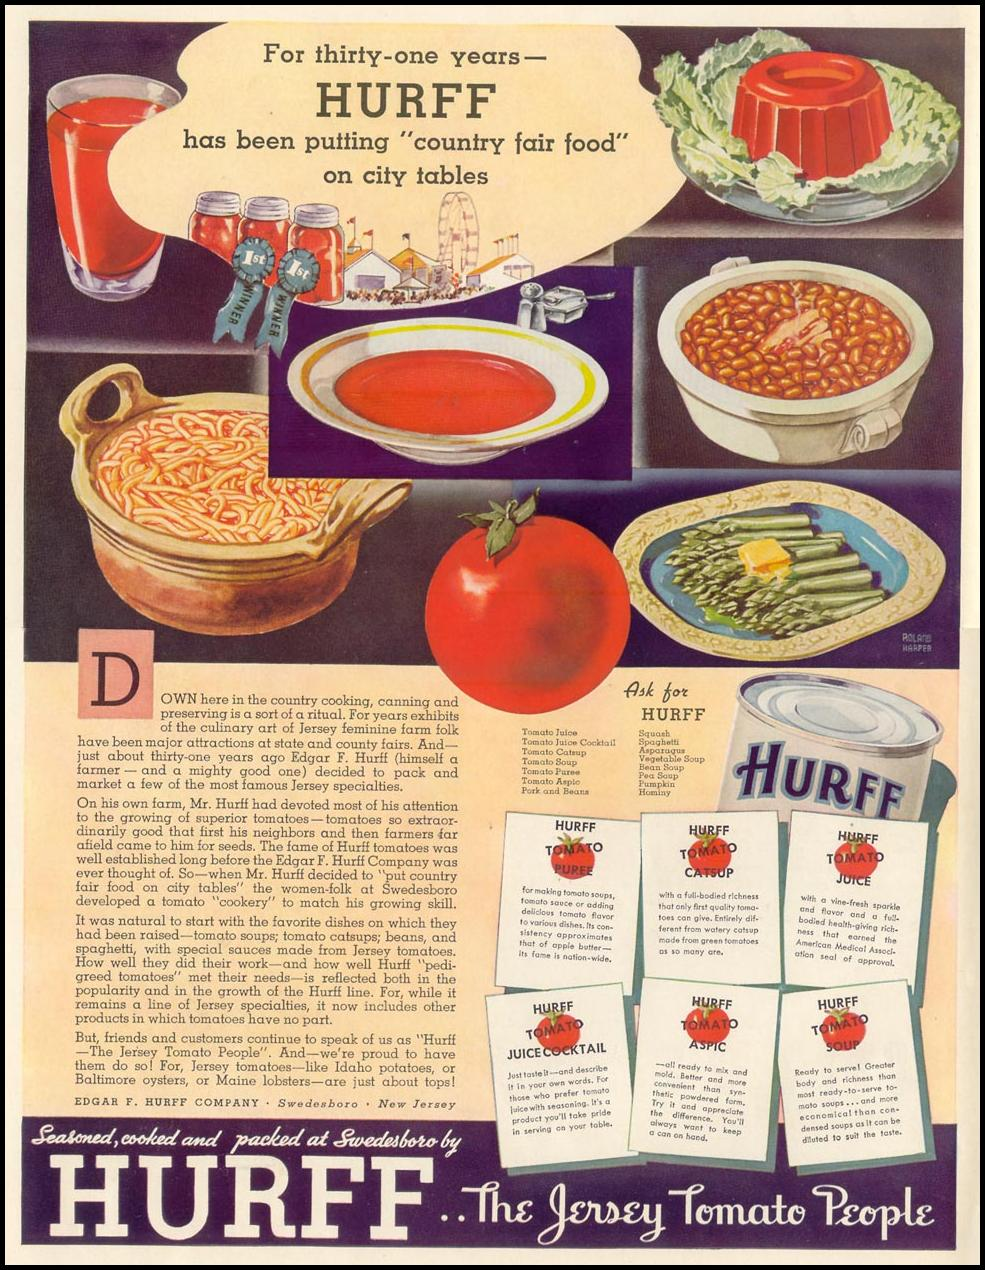 HURFF TOMATO PRODUCTS LIFE 10/04/1937 INSIDE FRONT